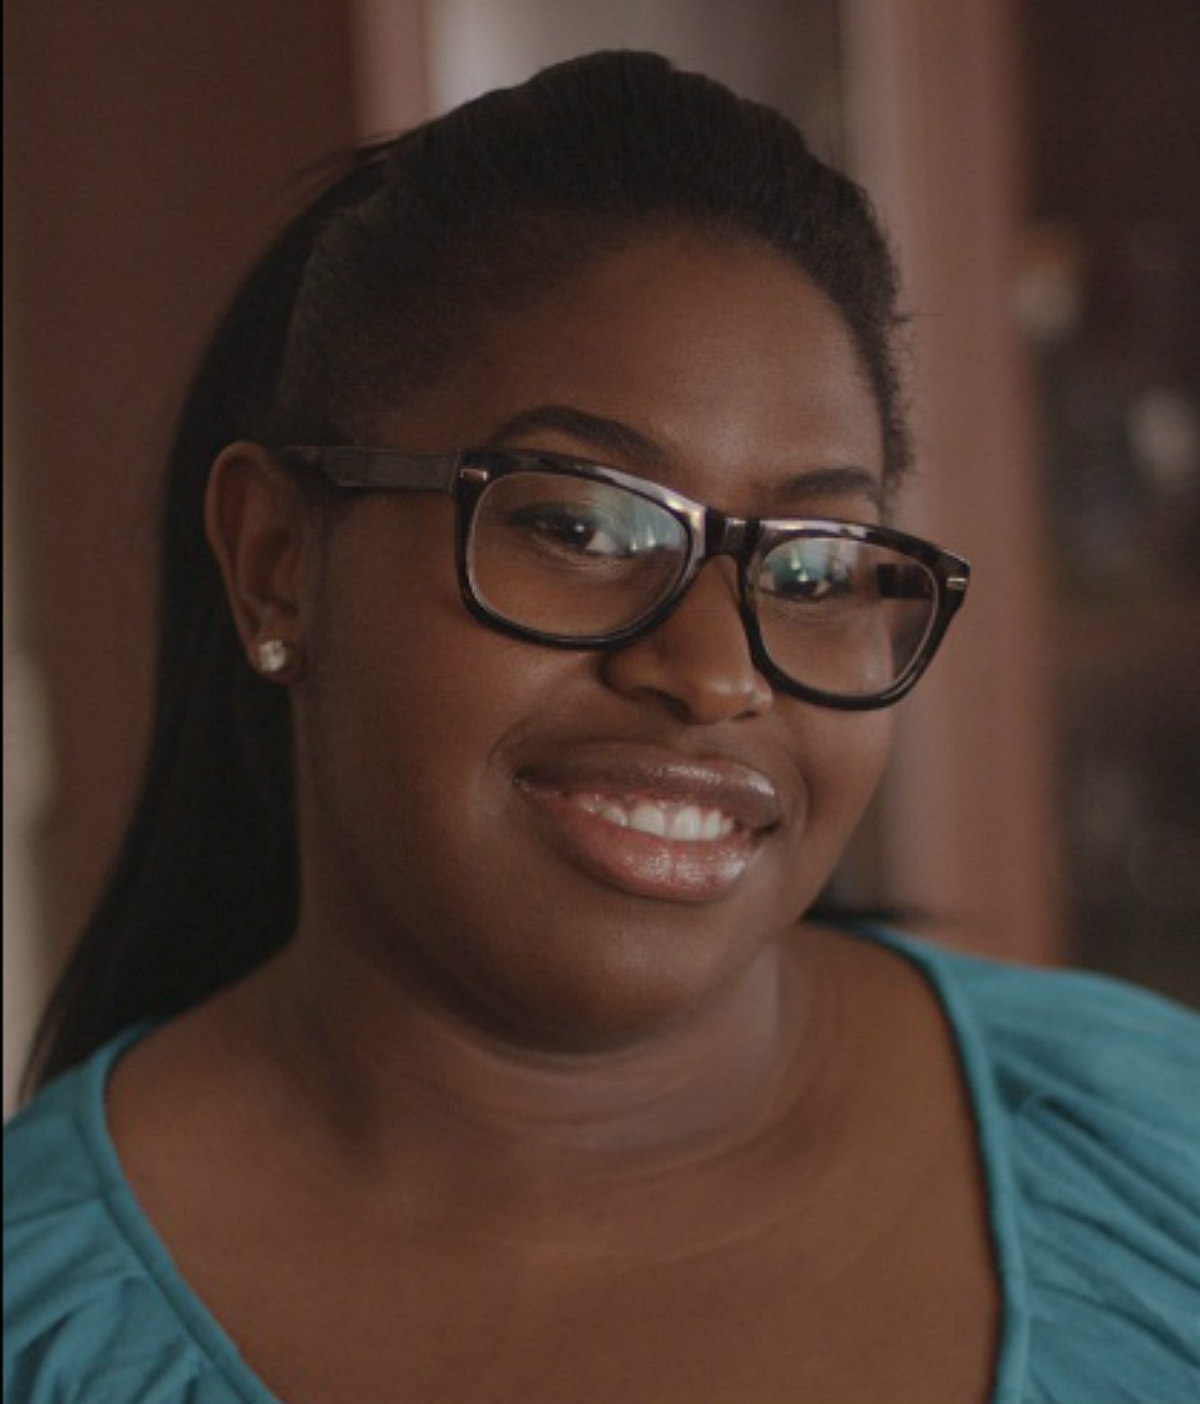 Rebekah Weatherspoon, a Black woman wearing glasses, smiles at the camera